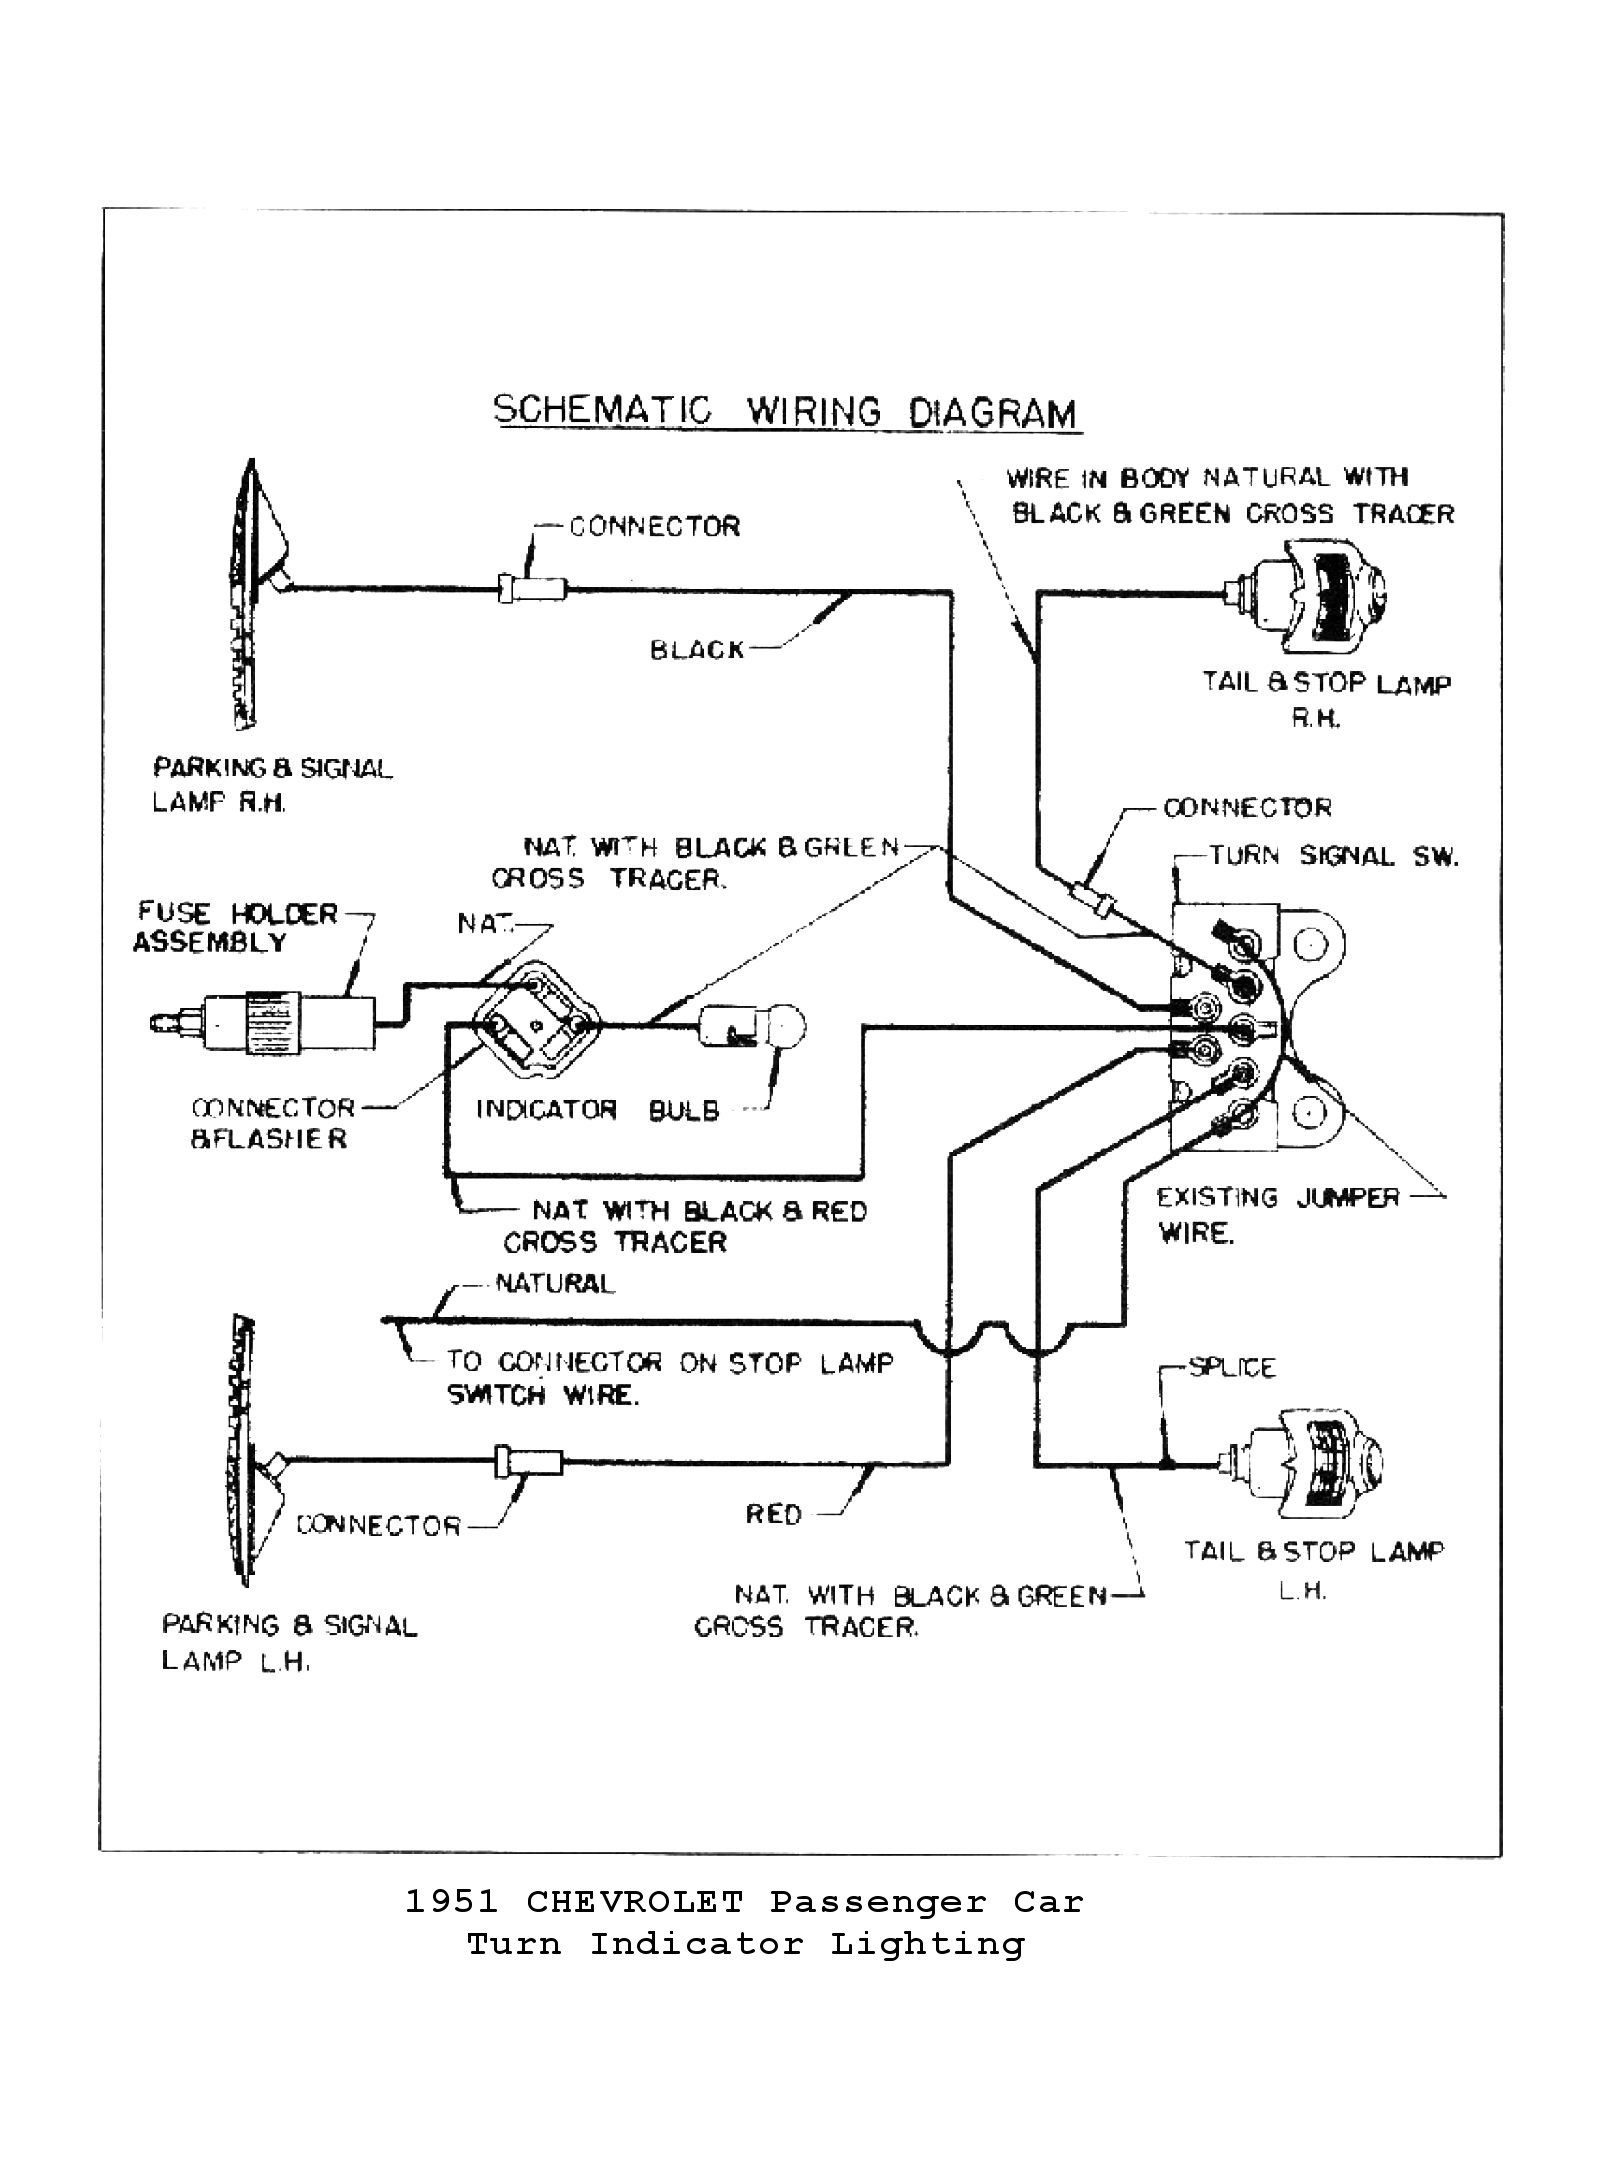 1951 Chevy Wiring Harness Just Data Truck Ford Diagram Manual Schema 93